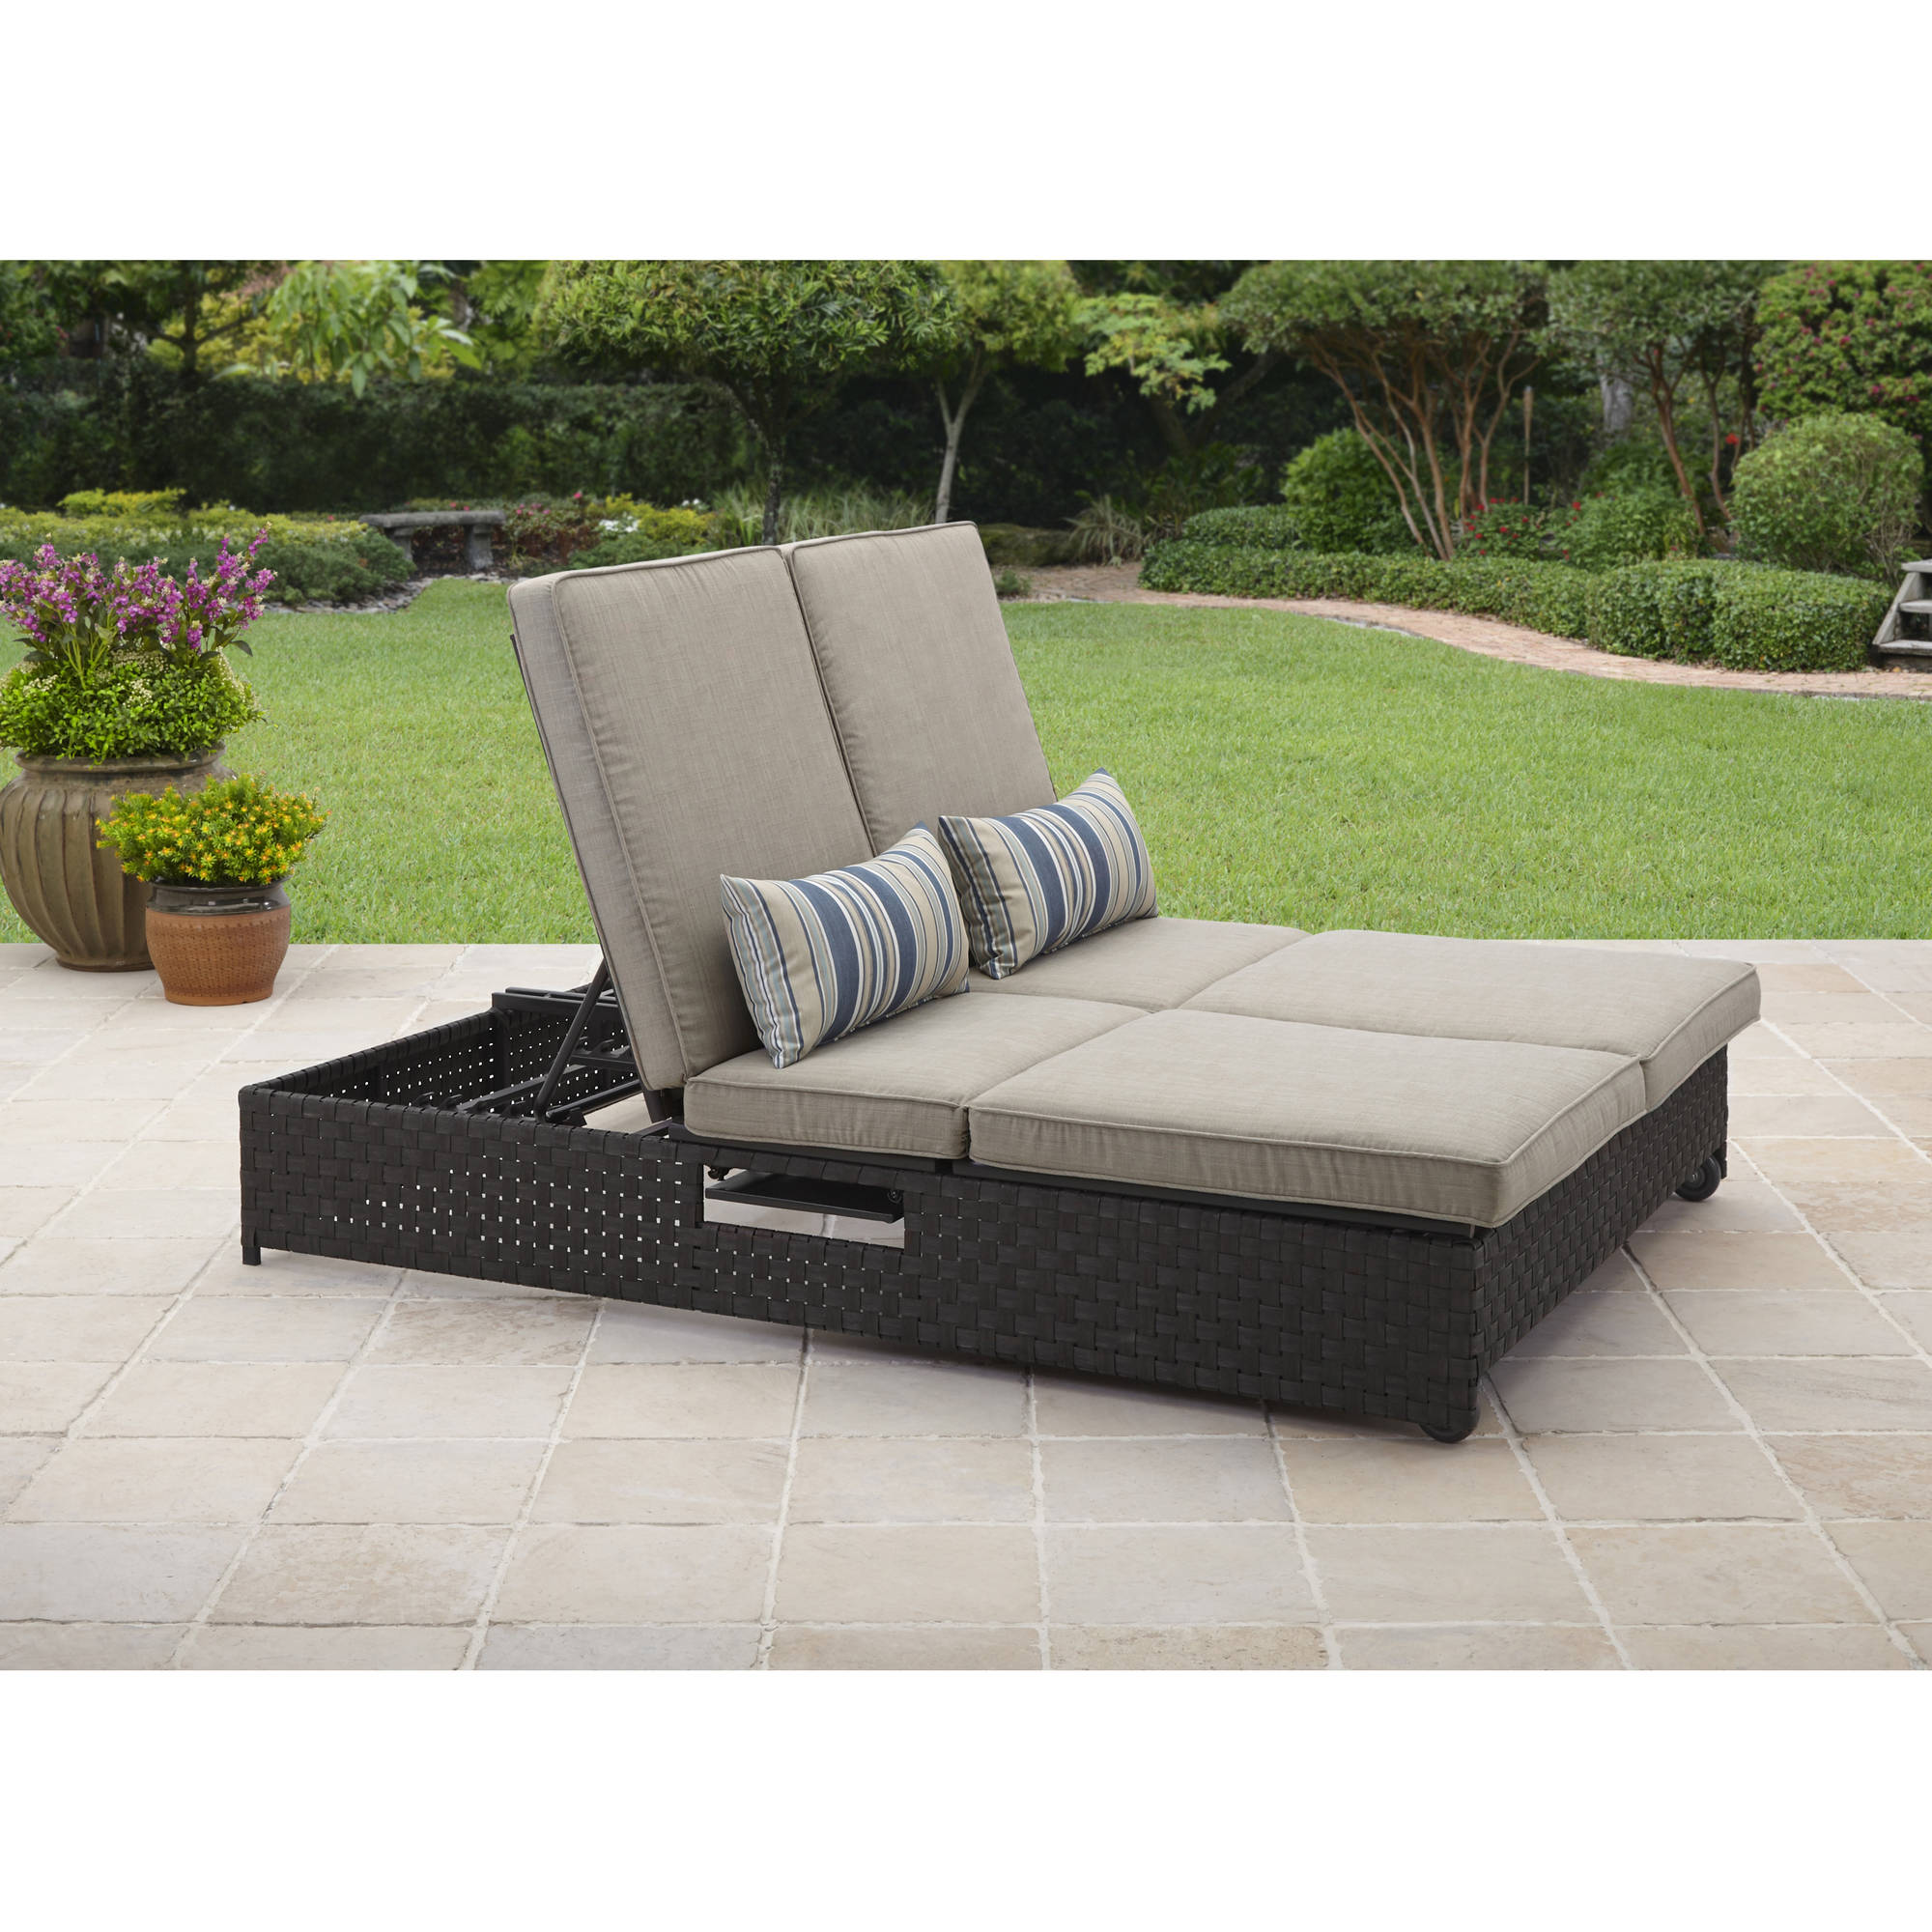 Better Homes and Gardens Avila Beach Double Lounger/Sofa ...